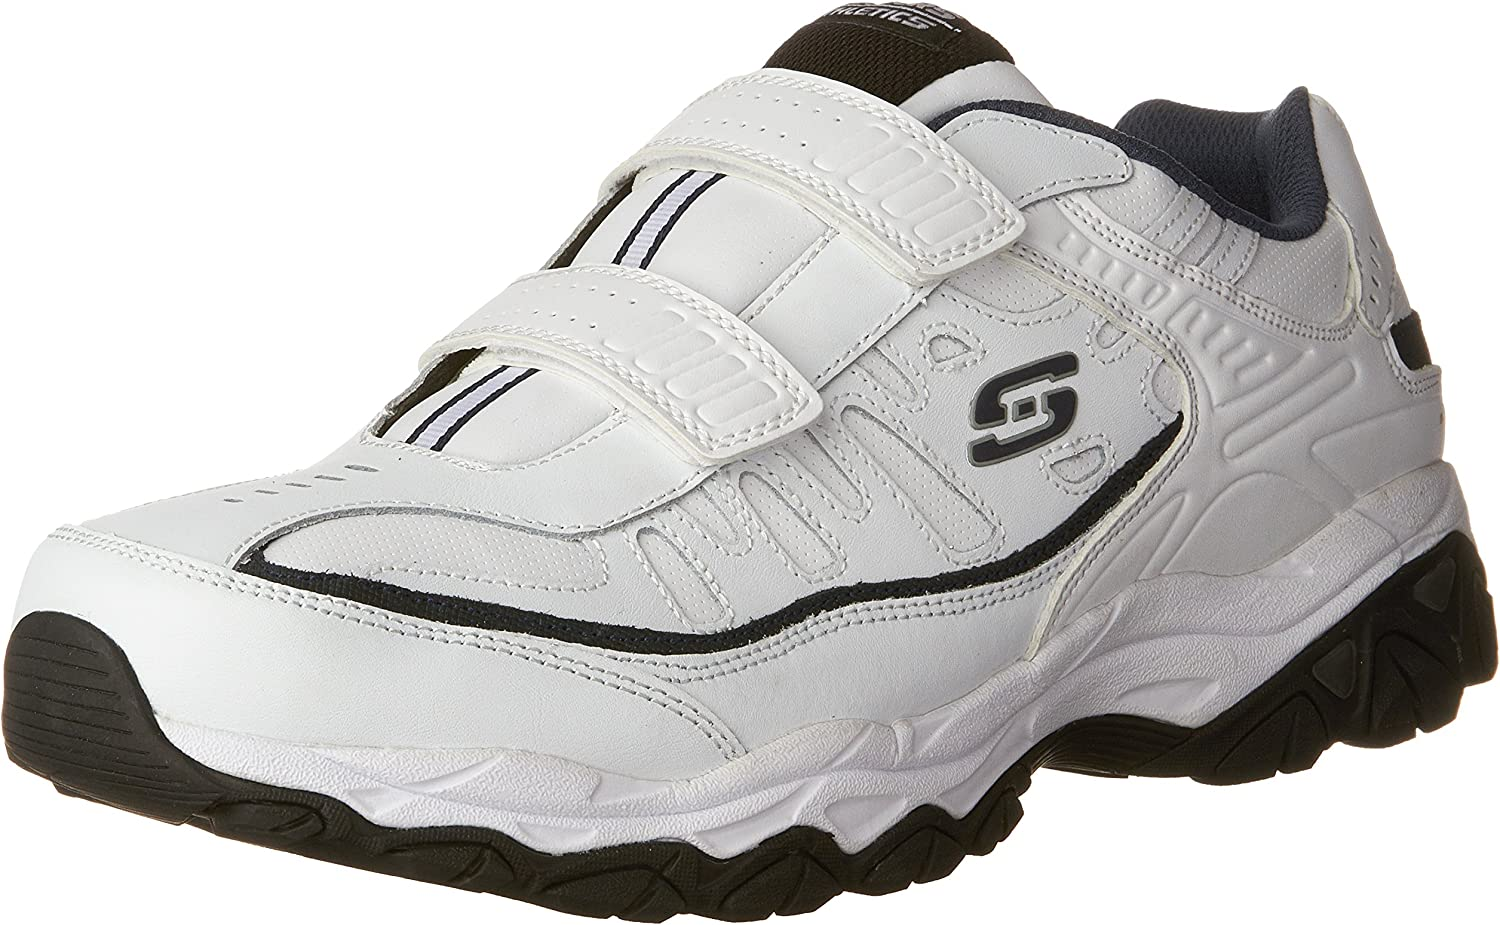 Skechers Men's Afterburn M. Fit Strike